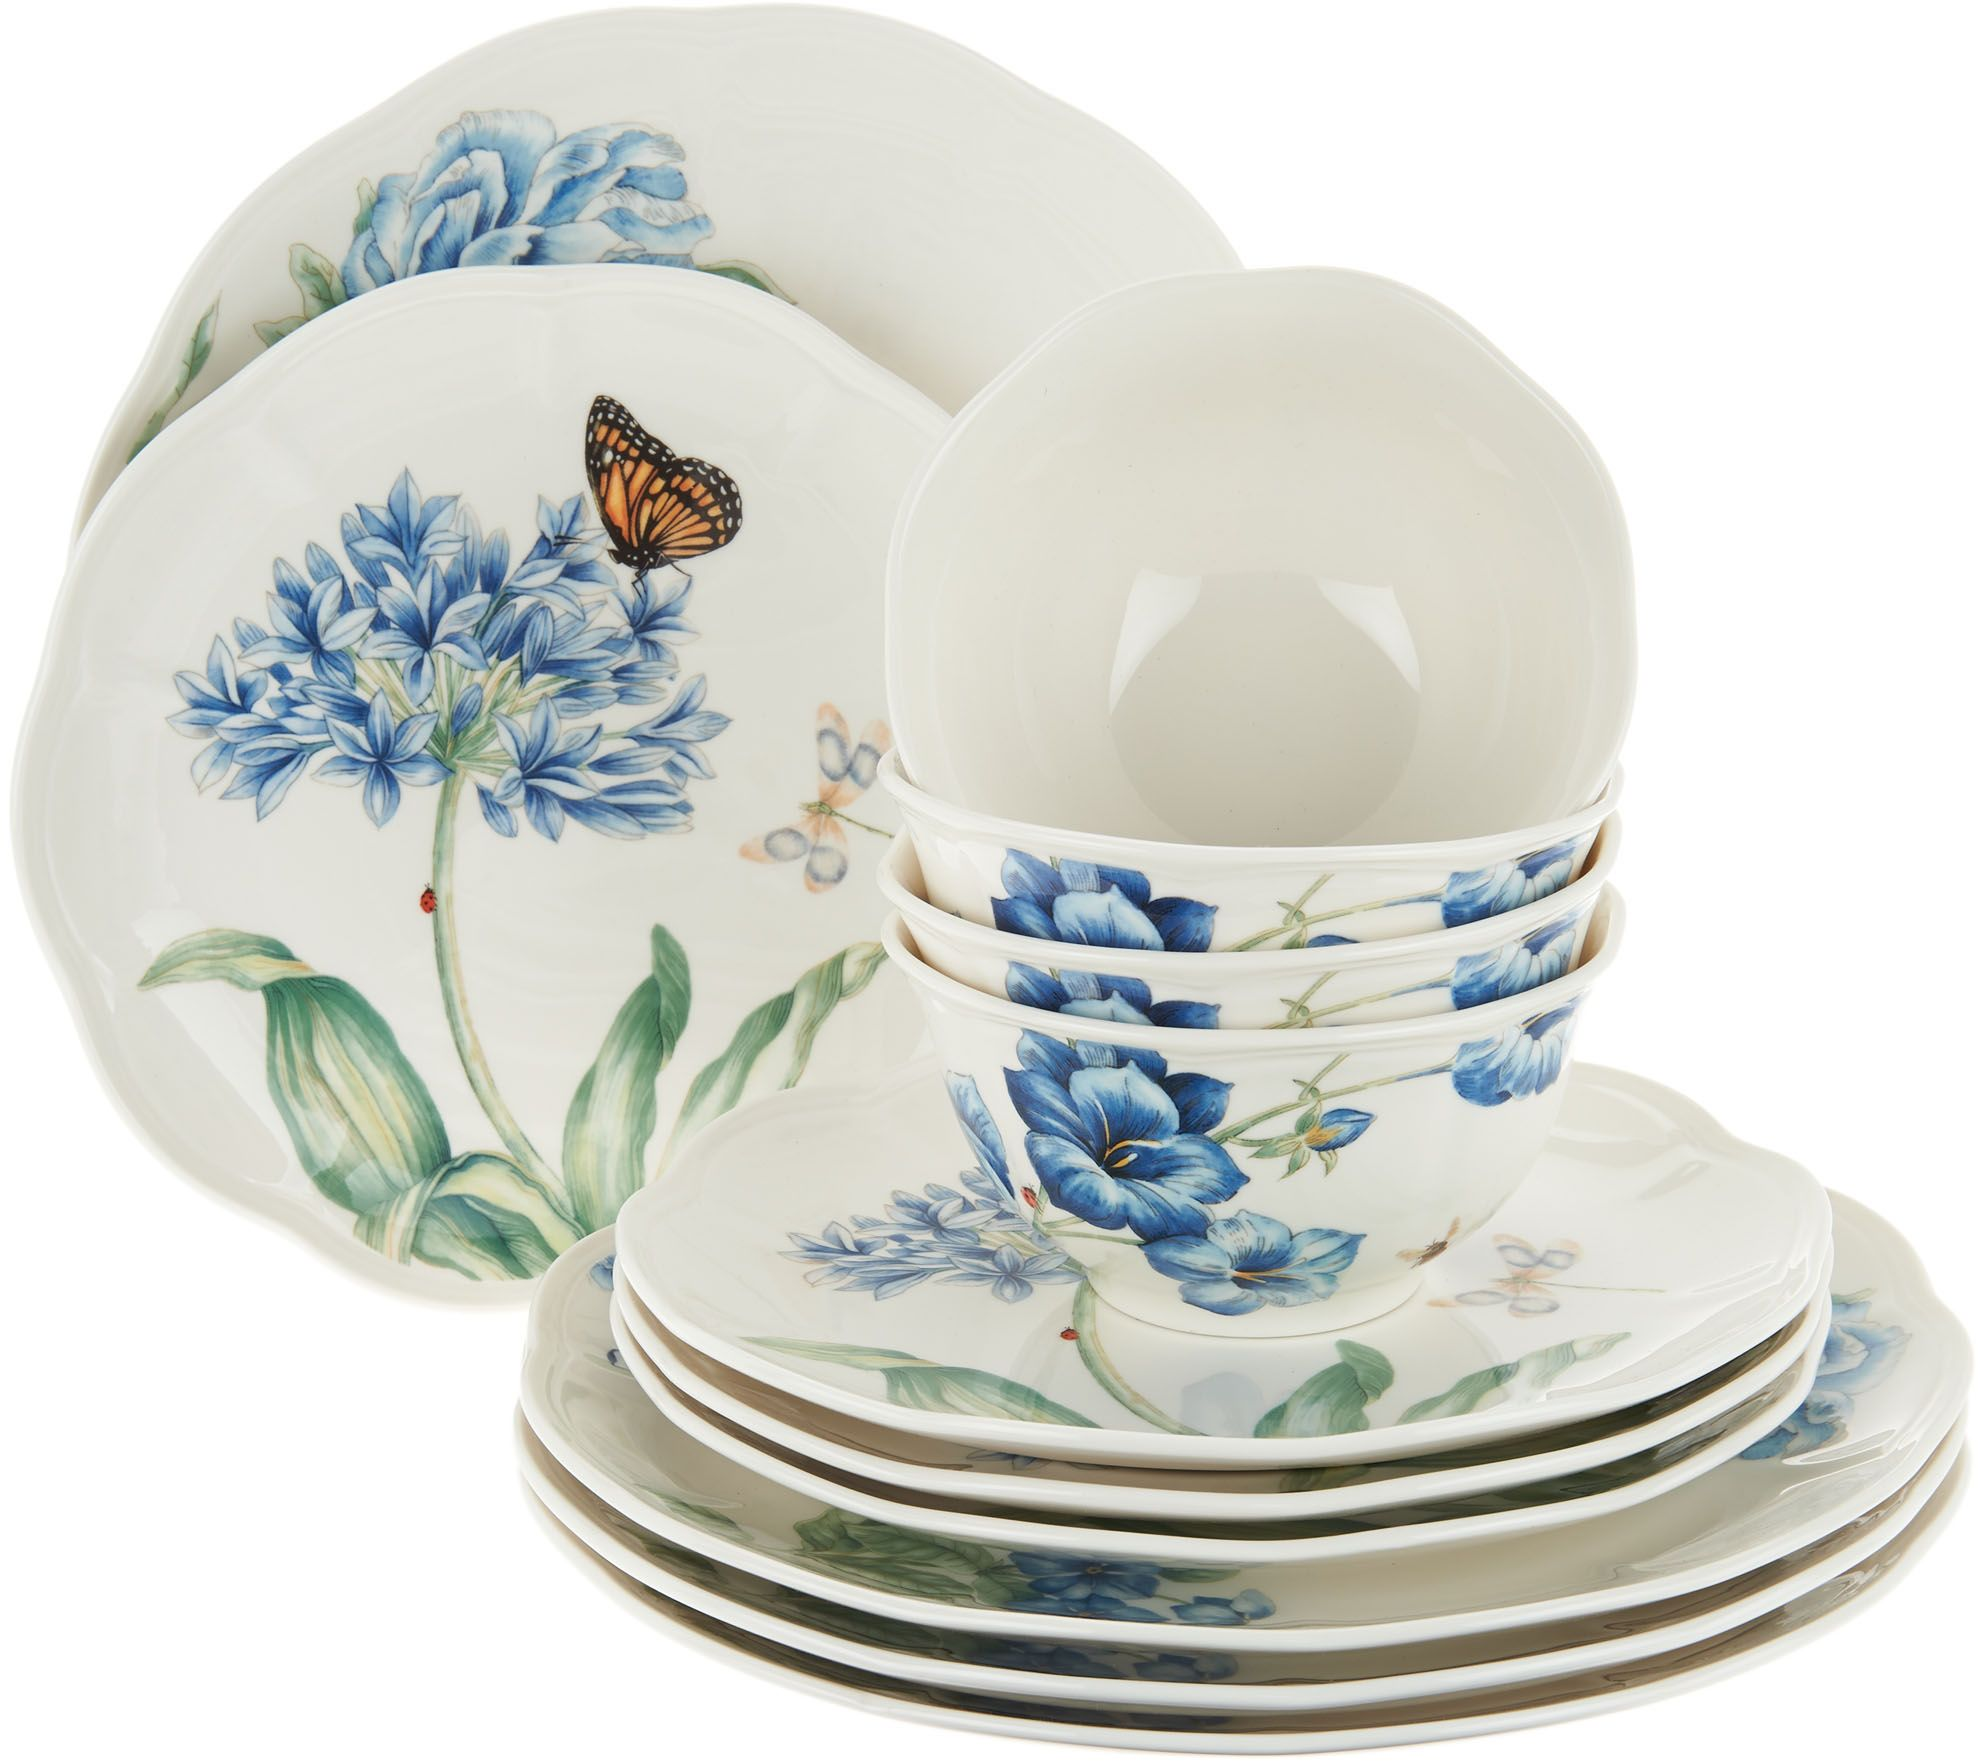 lenox butterfly meadow pc porcelain dinnerware set  page   - lenox butterfly meadow pc porcelain dinnerware set  page  — qvccom